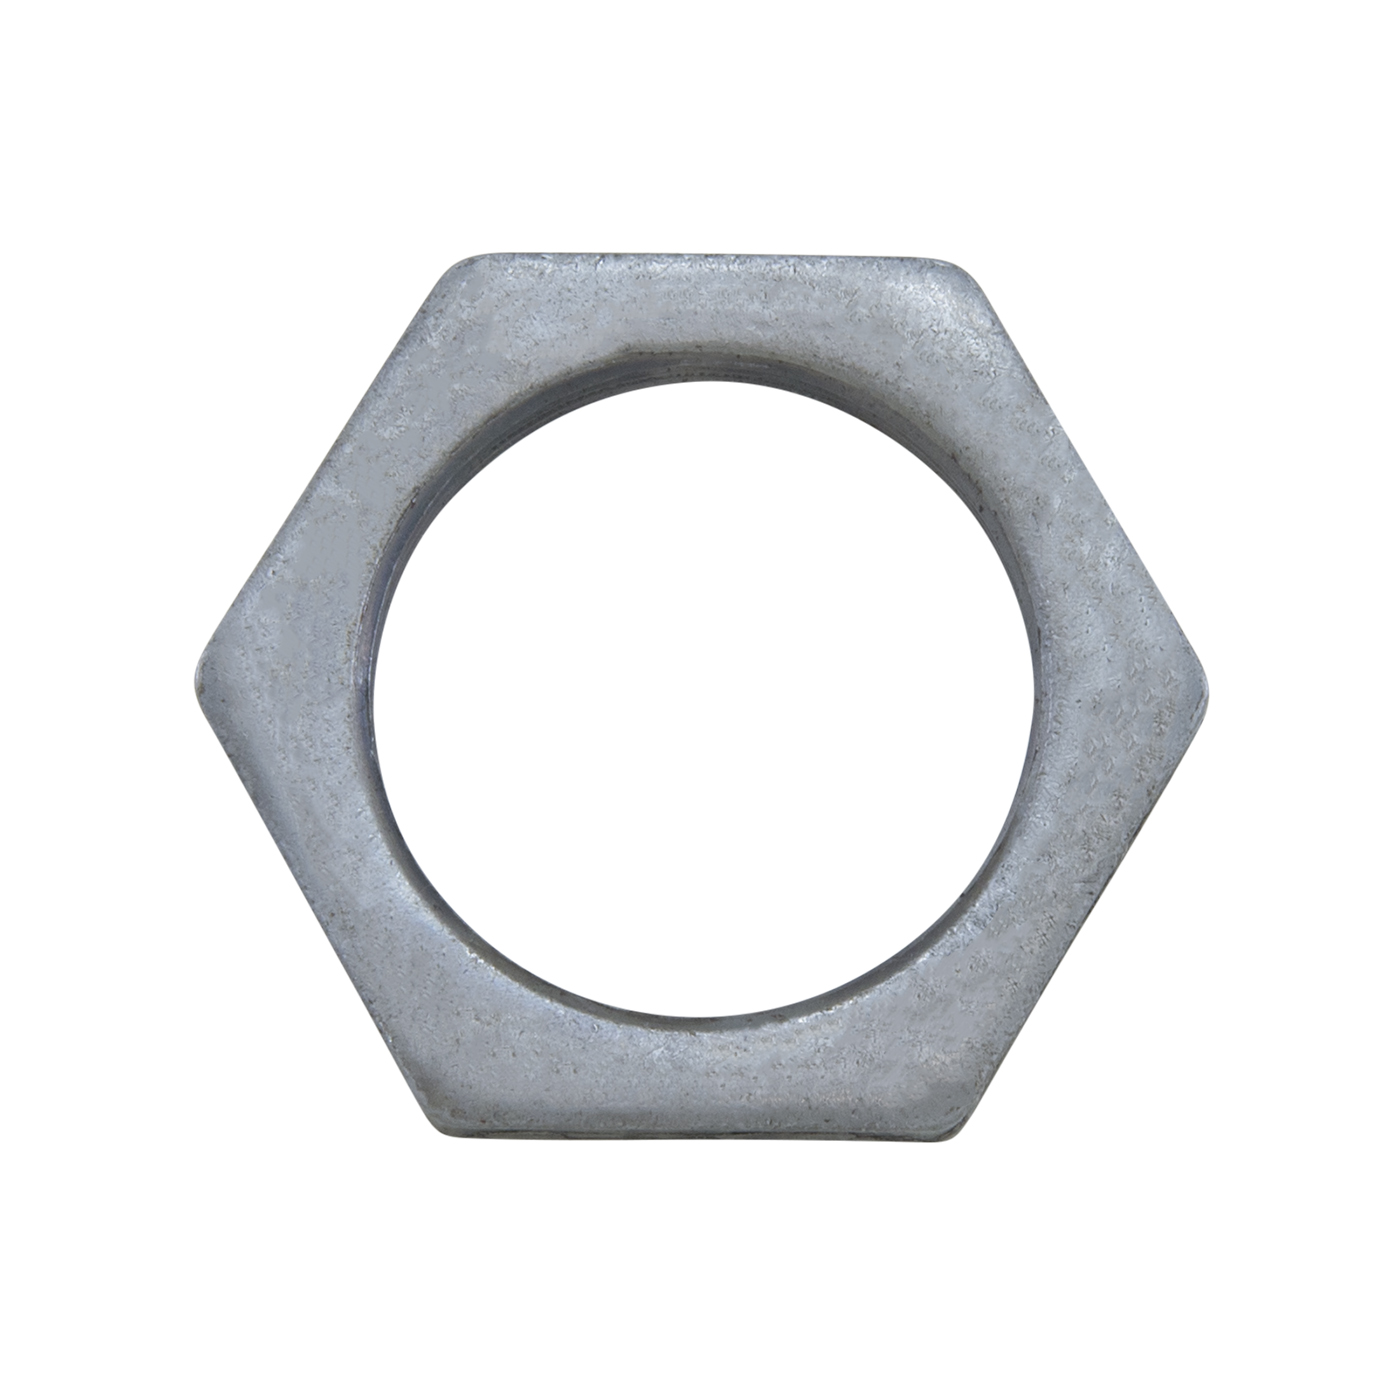 YSPSP-004 - Spindle nut retainer for Dana 60 & 70, 1.830